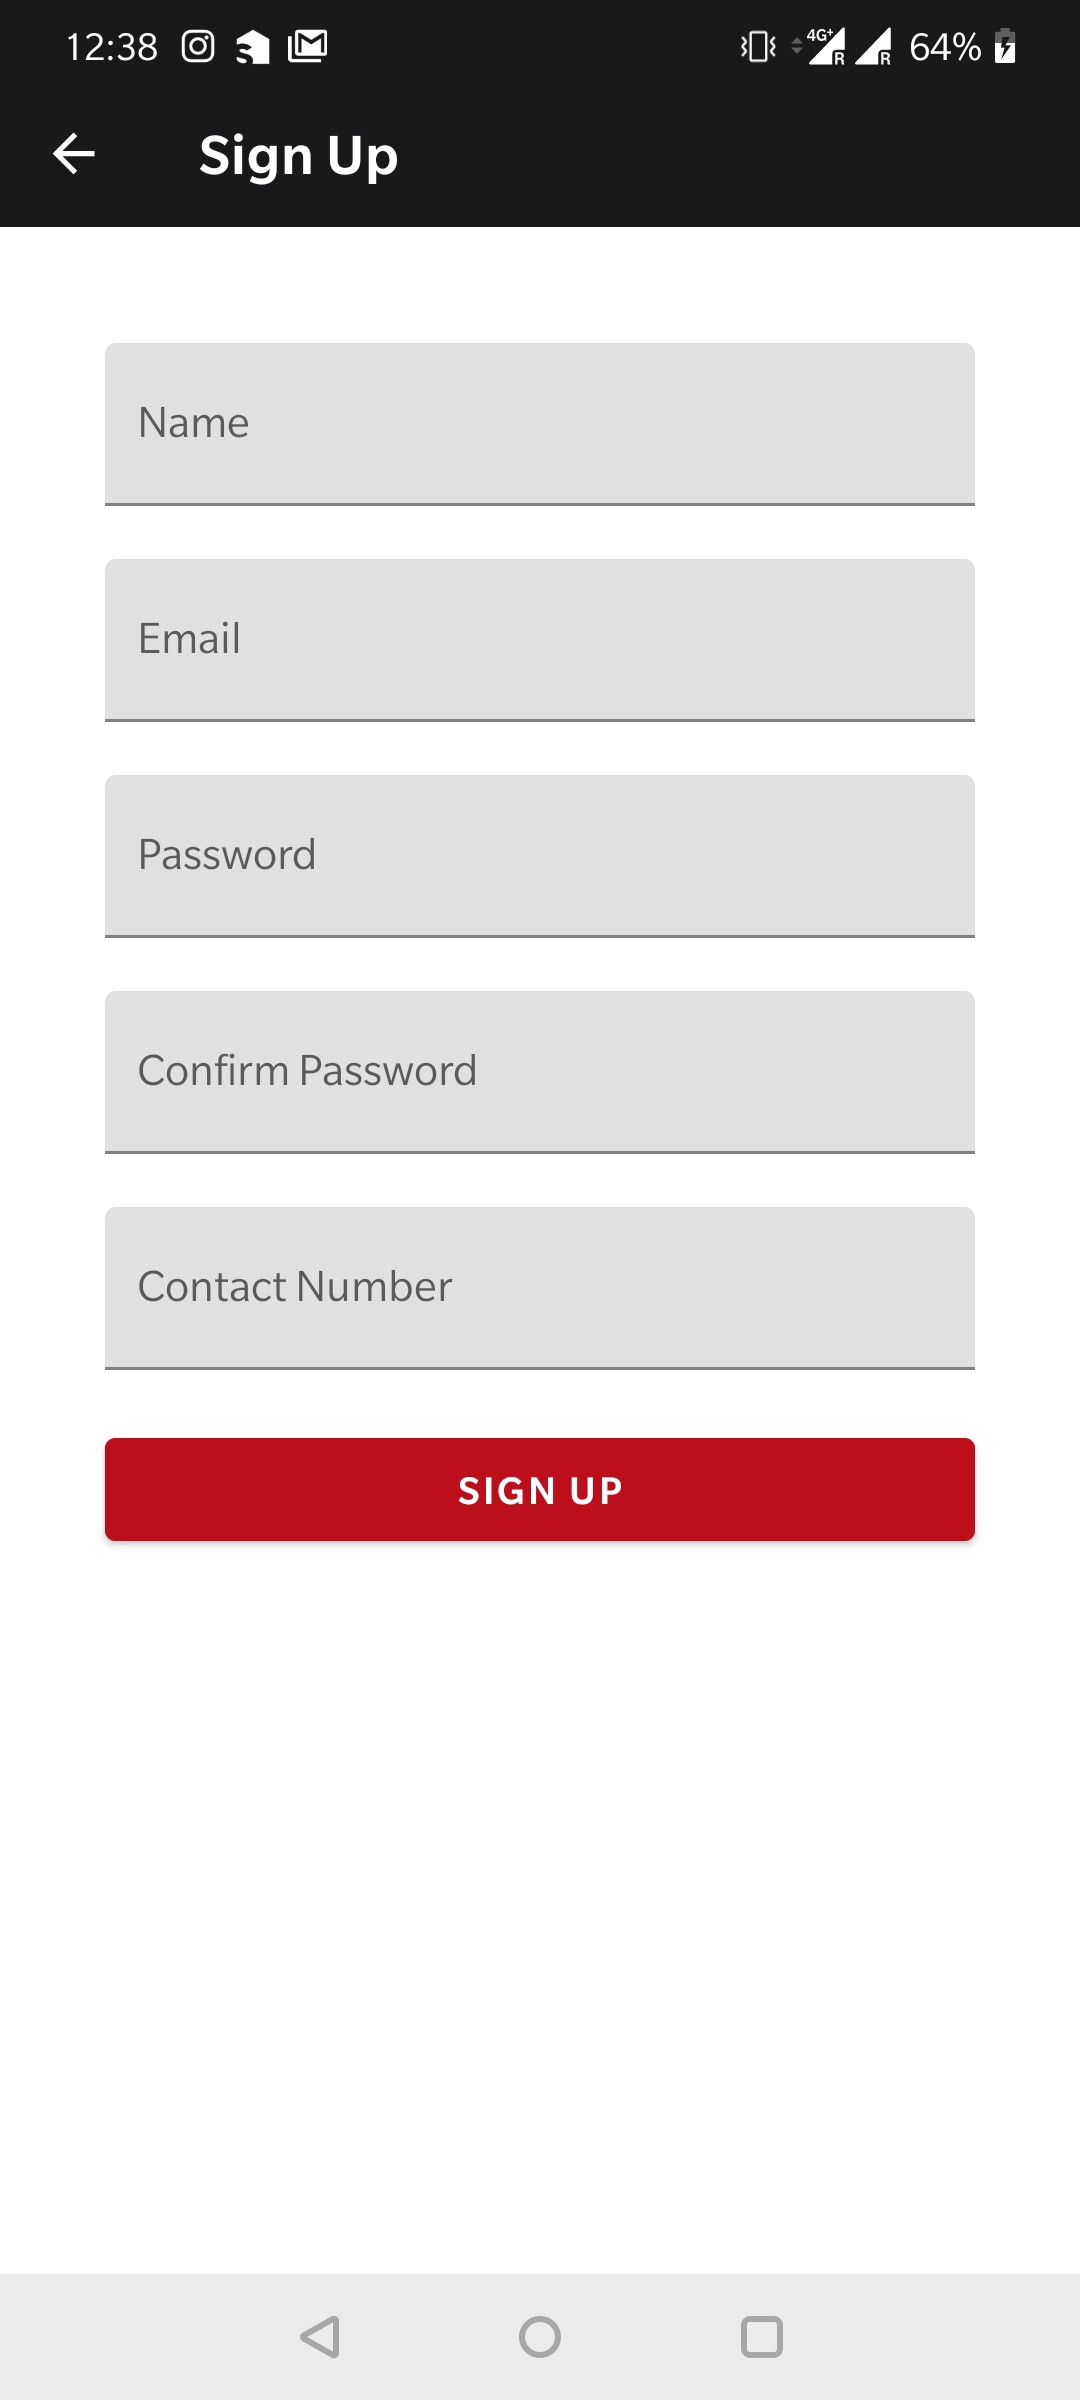 Sign Up Screen